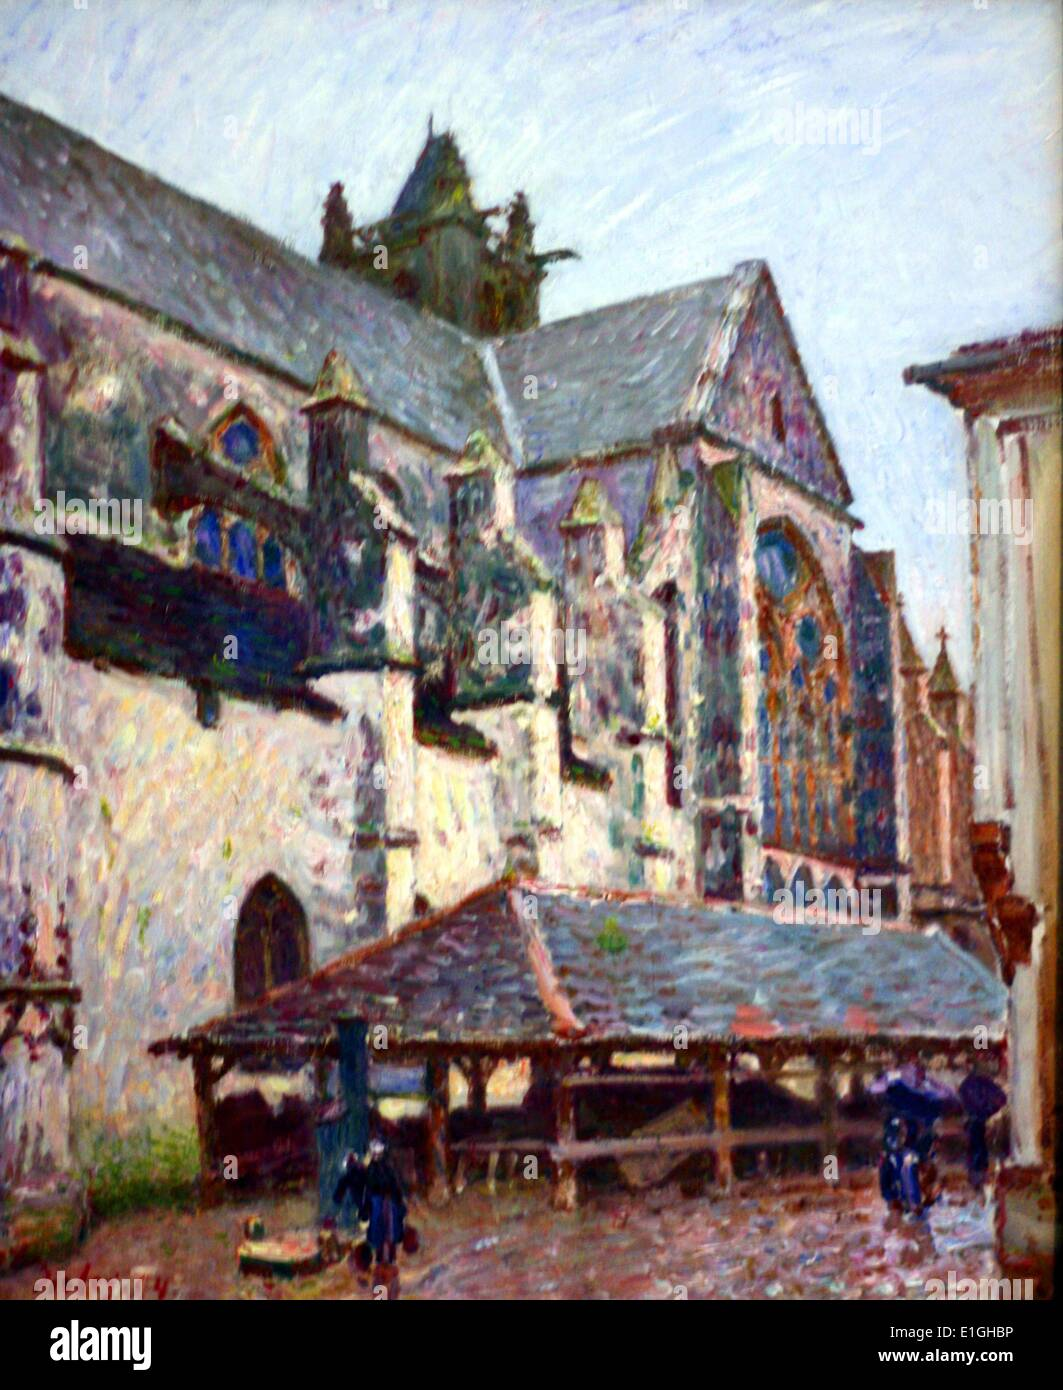 The Church of Moret in the Rain, 1984 by  Alfred Sisley (1839-1899), oil on canvas. - Stock Image